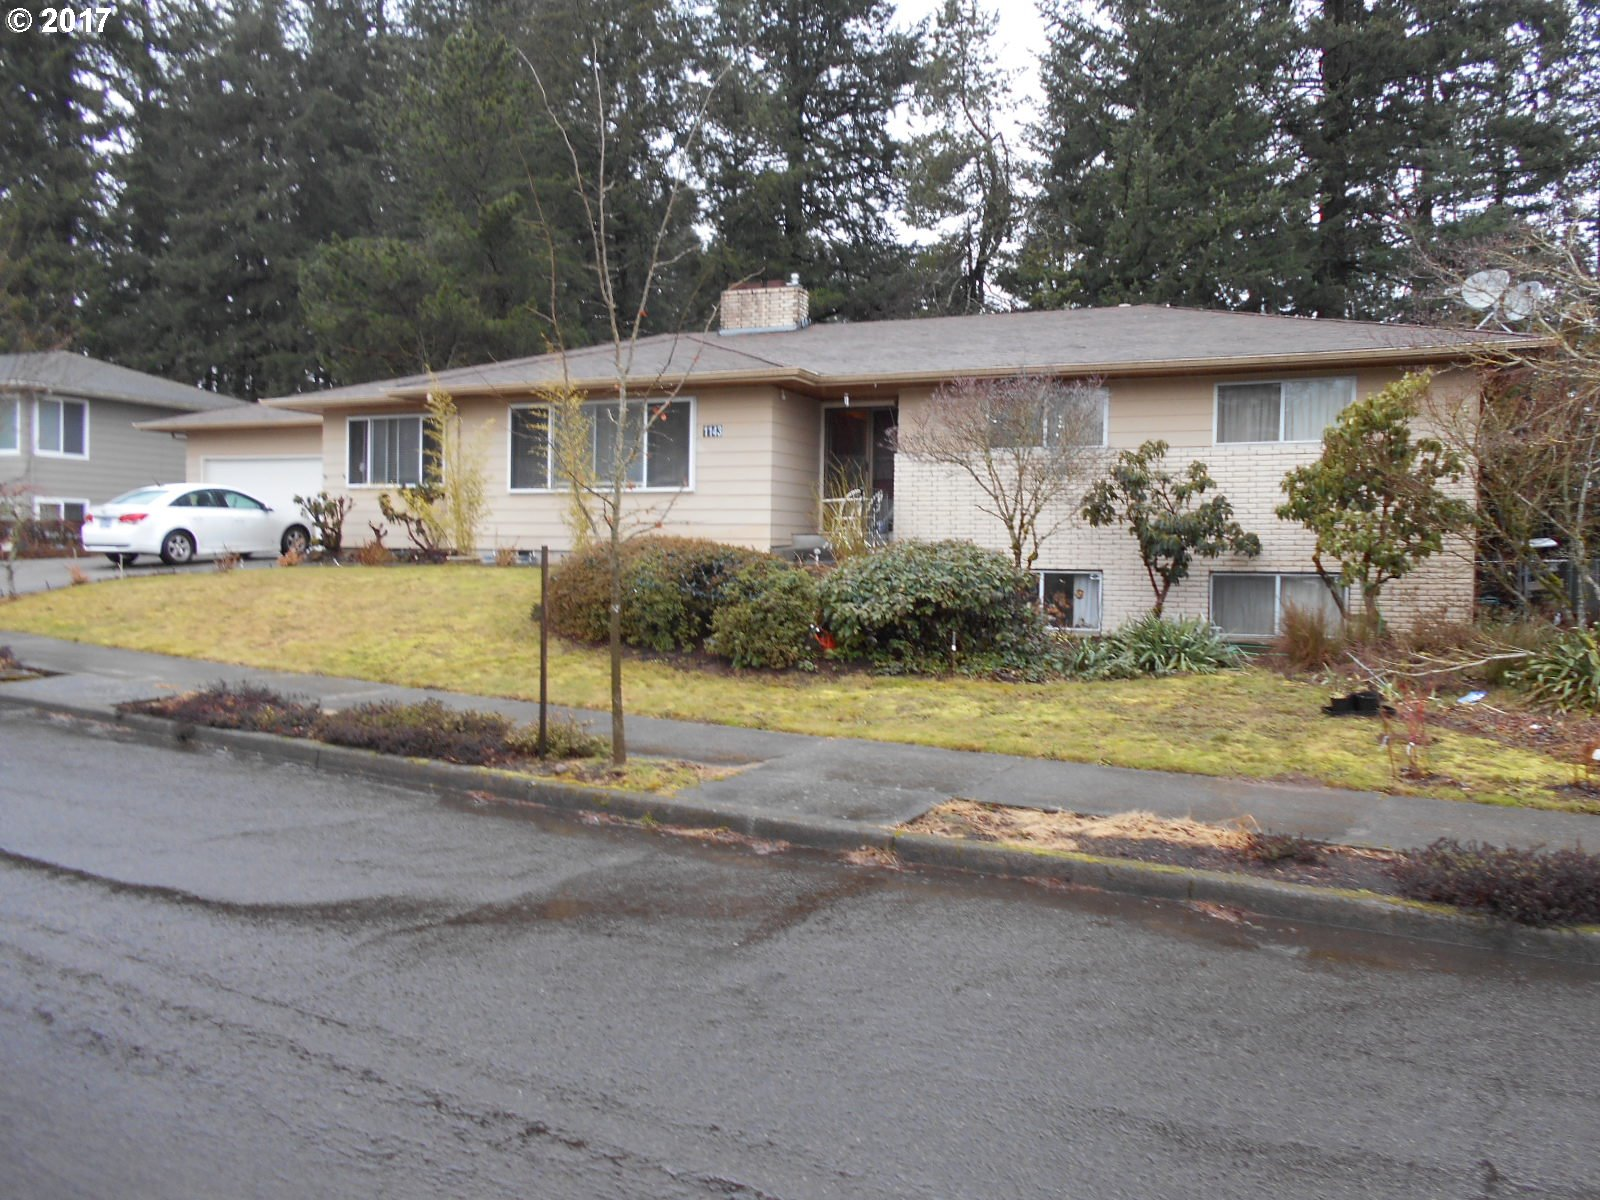 4196 sq. ft 5 bedrooms 3 bathrooms  House For Sale,Portland, OR